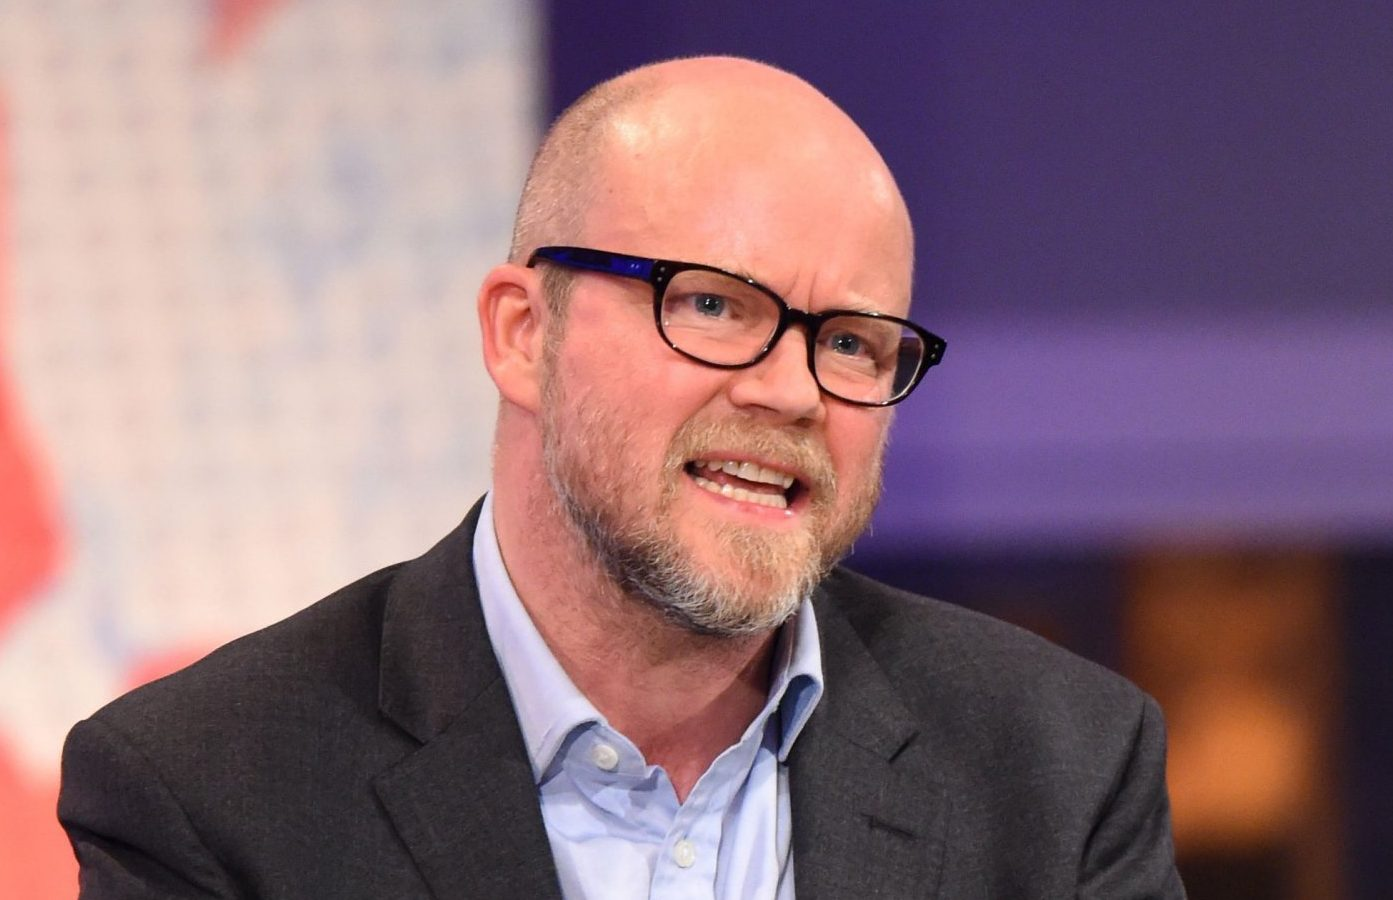 Backlash over appointment of 'Tory cheerleader' Toby Young to university watchdog